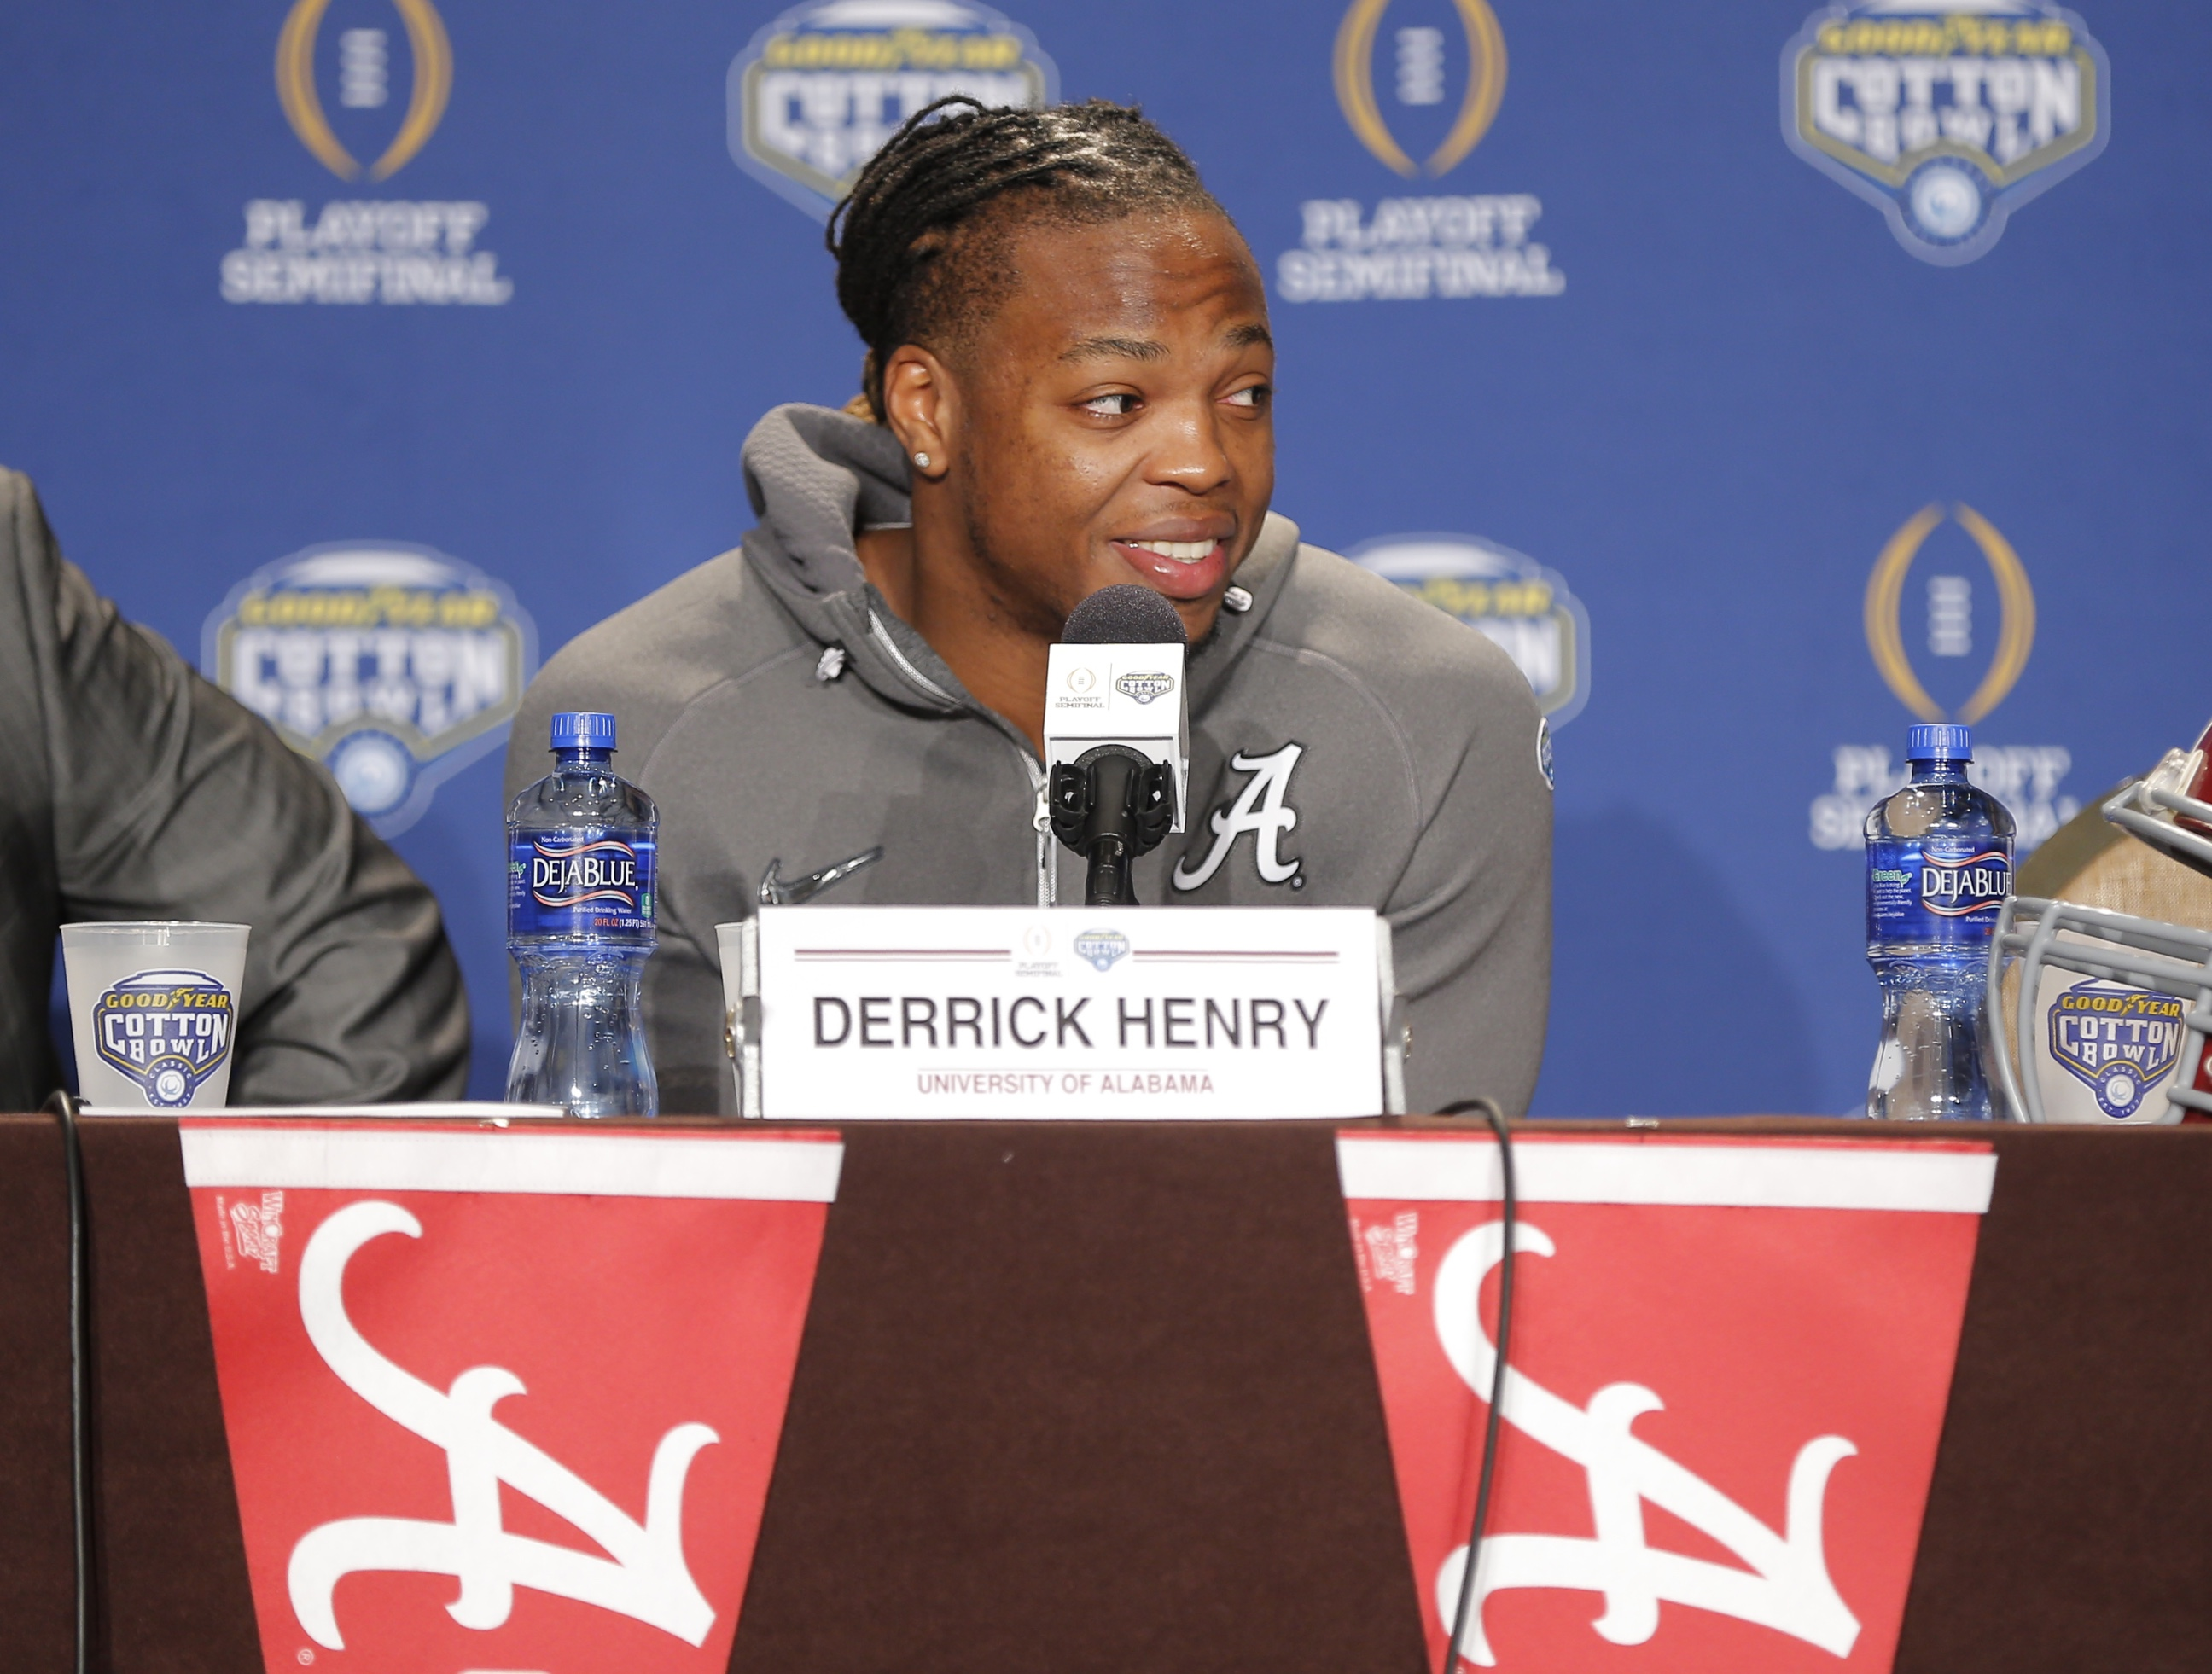 Alabma running back Derrick Henry answers questions during a news conference for the NCAA Cotton Bowl college football game against Michigan State, Sunday, Dec. 27, 2015, in Dallas. (AP Photo/Brandon Wade)